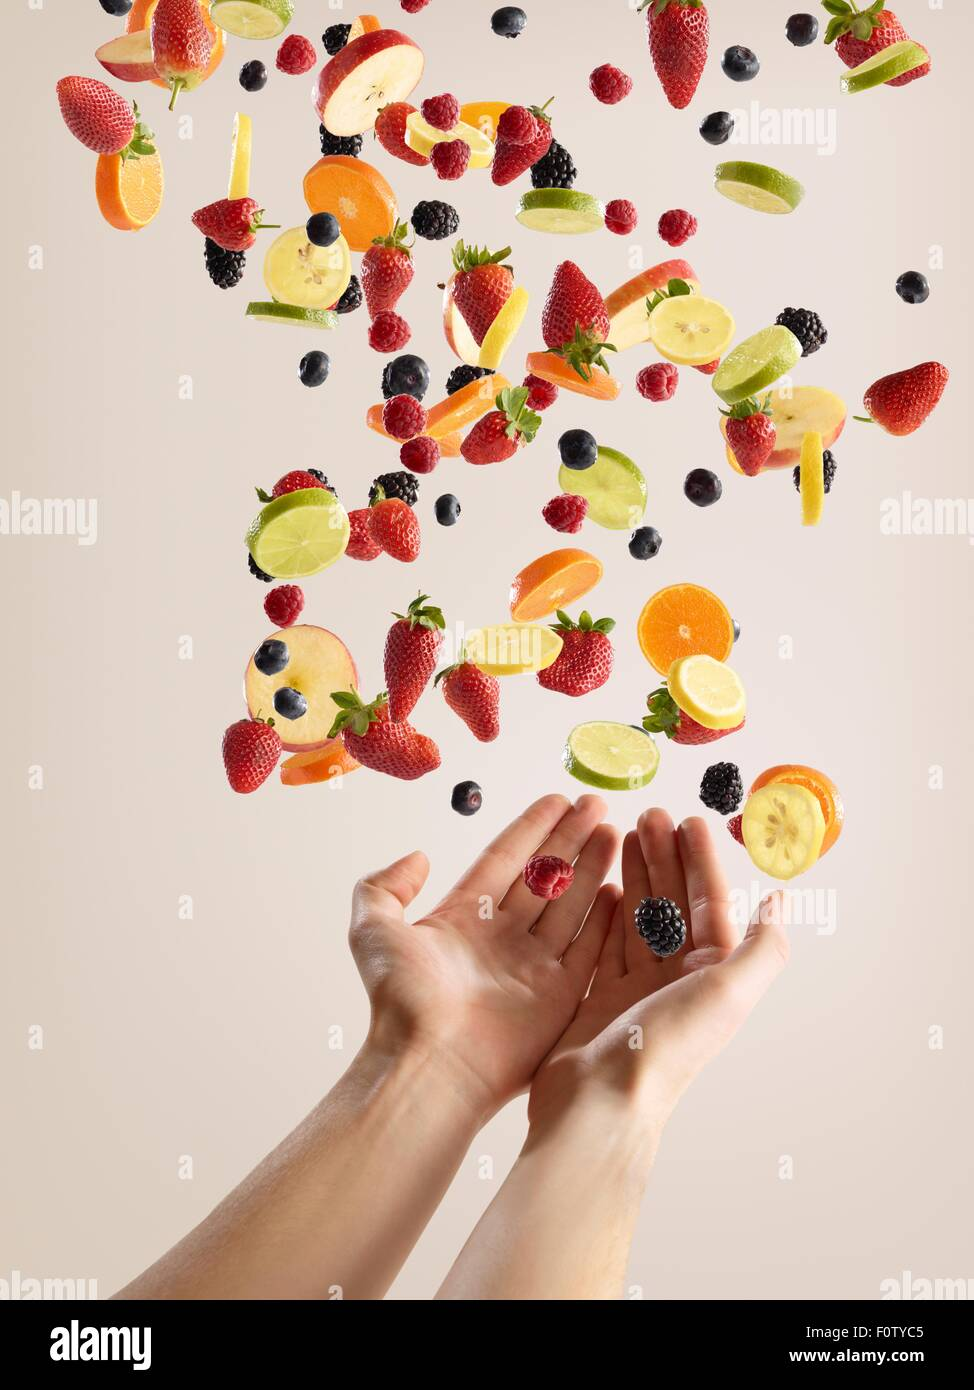 Teenage girls hands catching variety of fresh sliced fruit and berries - Stock Image